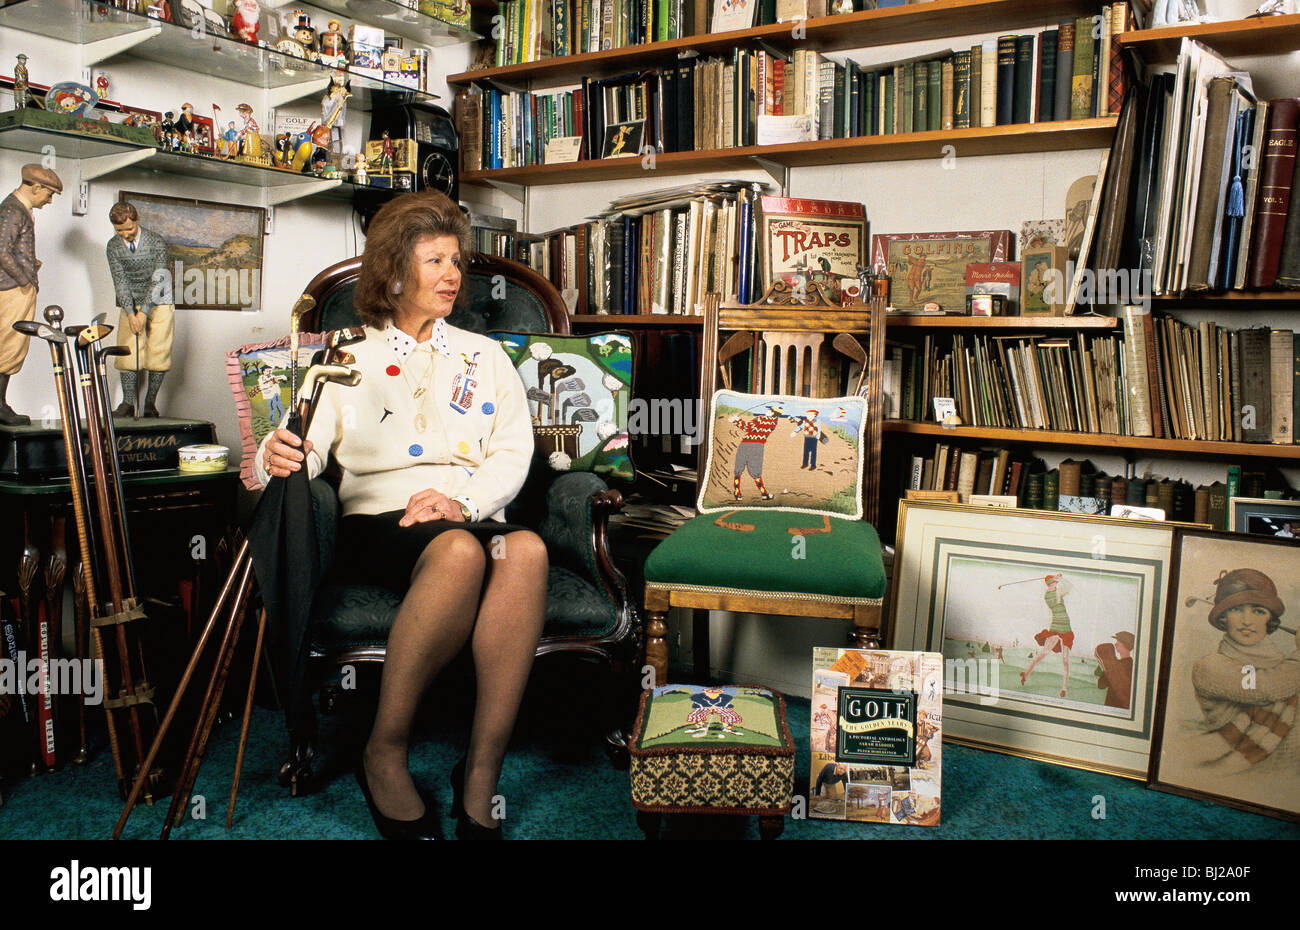 Author Sarah Fabian Baddiel, with some of her collection of golfiana, c2004. - Stock Image